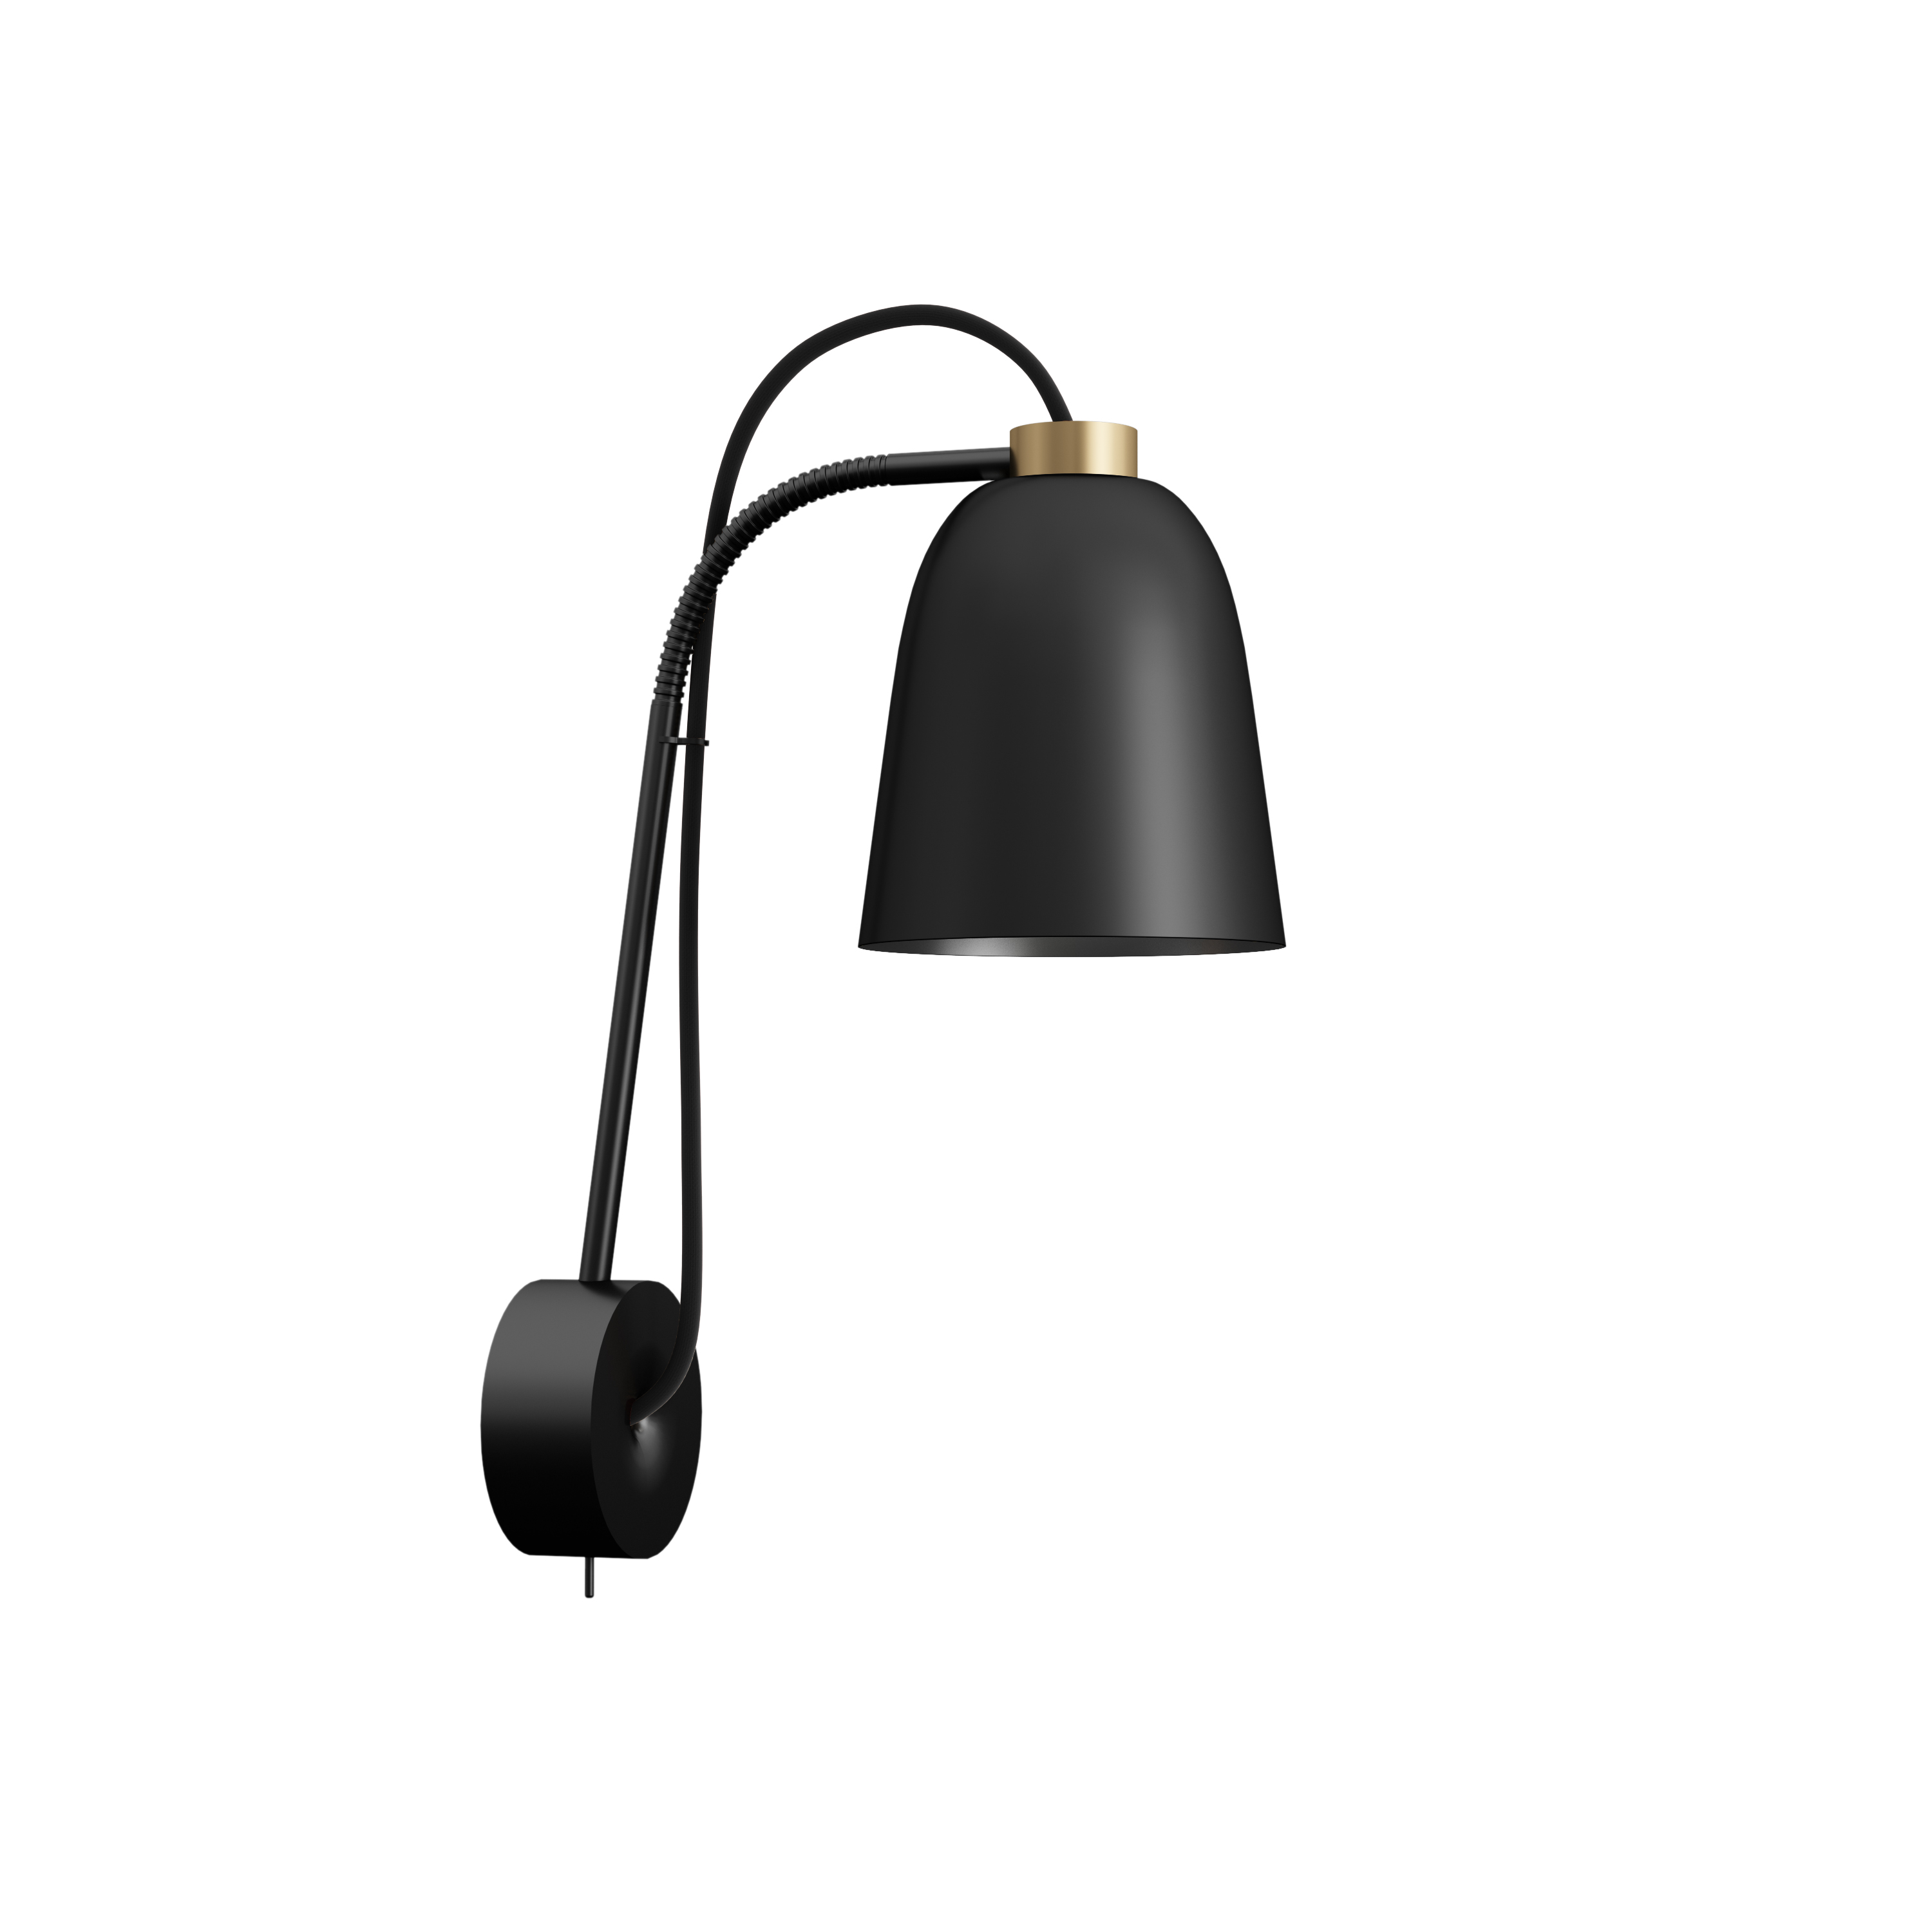 SUMMERA Wall Matt Black - Gold + Black Cord (Incl. Matt Black Base)